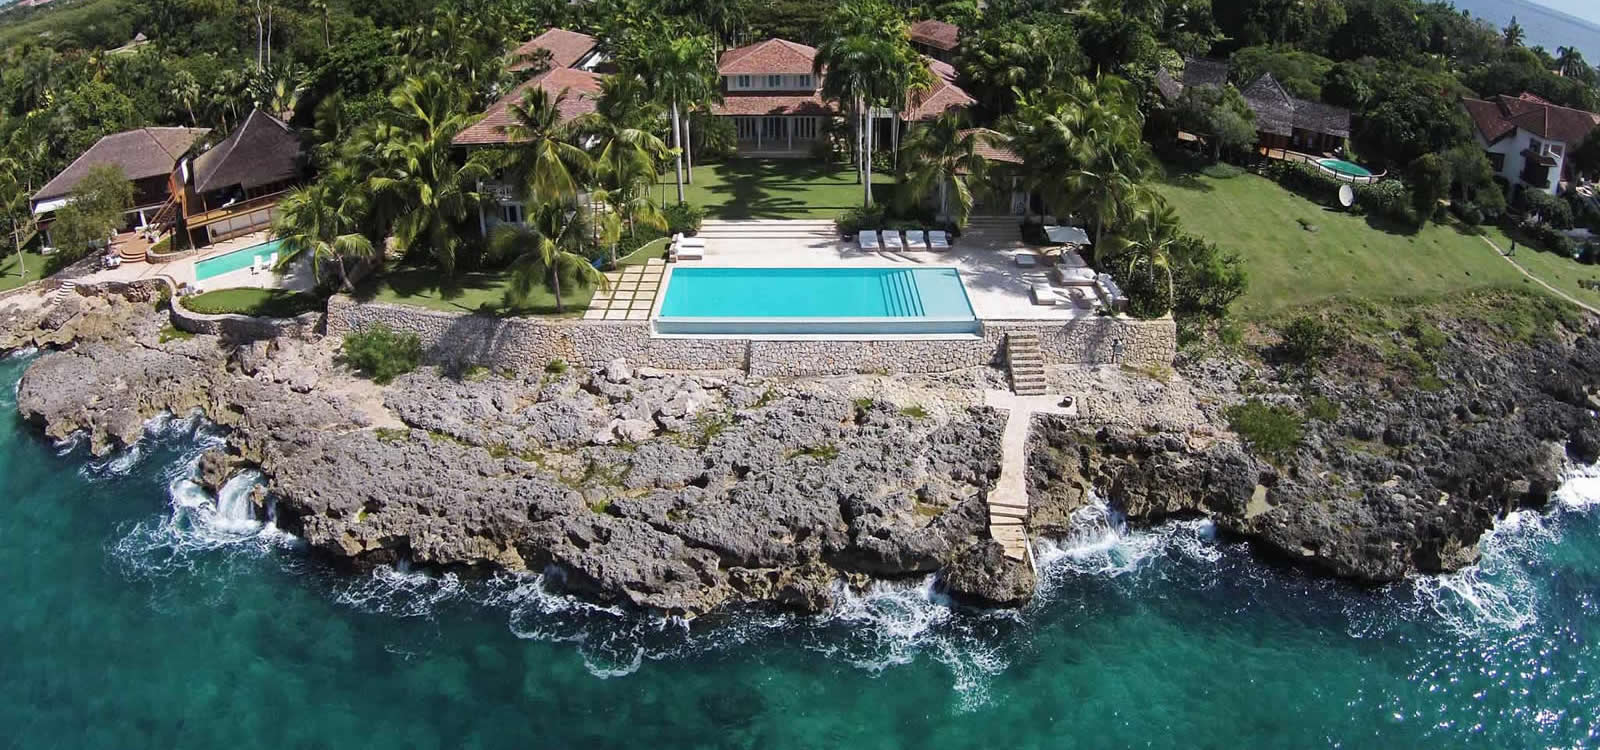 6 Bedroom Ultra Luxury Waterfront Home For Sale La Romana